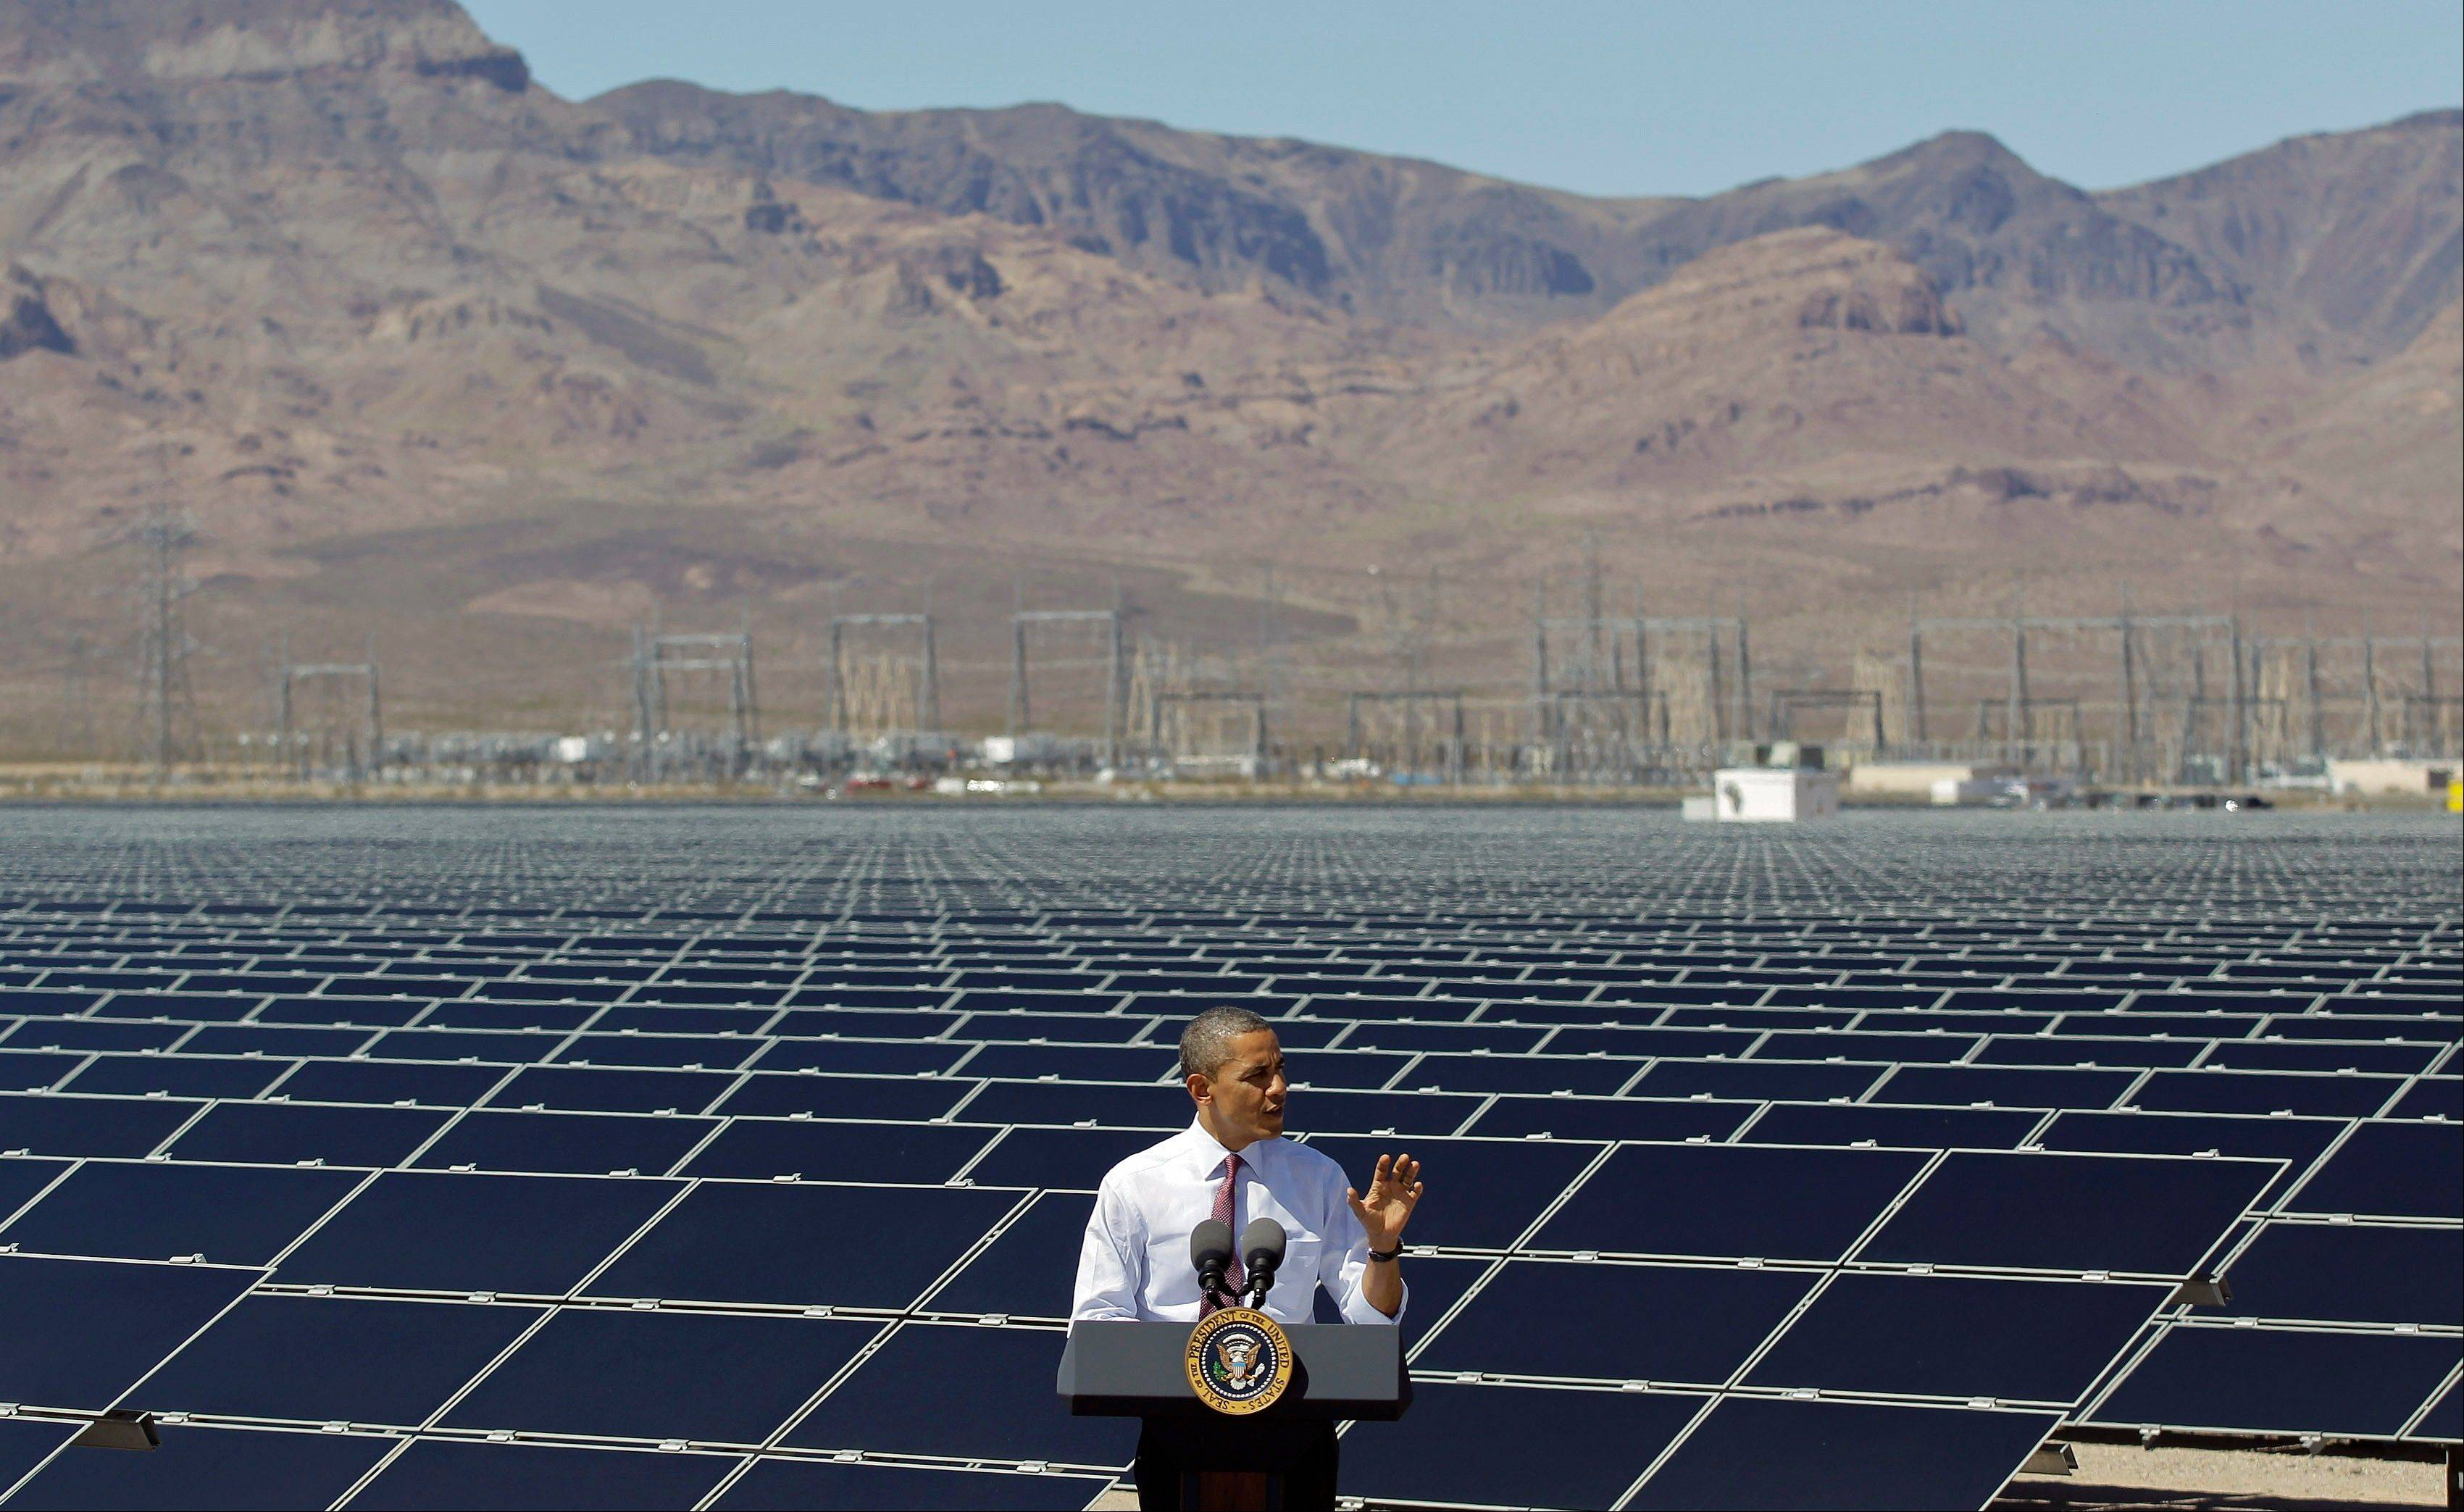 President Barack Obama speaks after touring Sempra's Copper Mountain Solar 1 facility in Boulder City, Nev., on March 21. Obama and his Republican rival, Mitt Romney, have visited the state, competing strenuously for Nevada's six electoral votes in what has become one of the most intense swing-state contests.